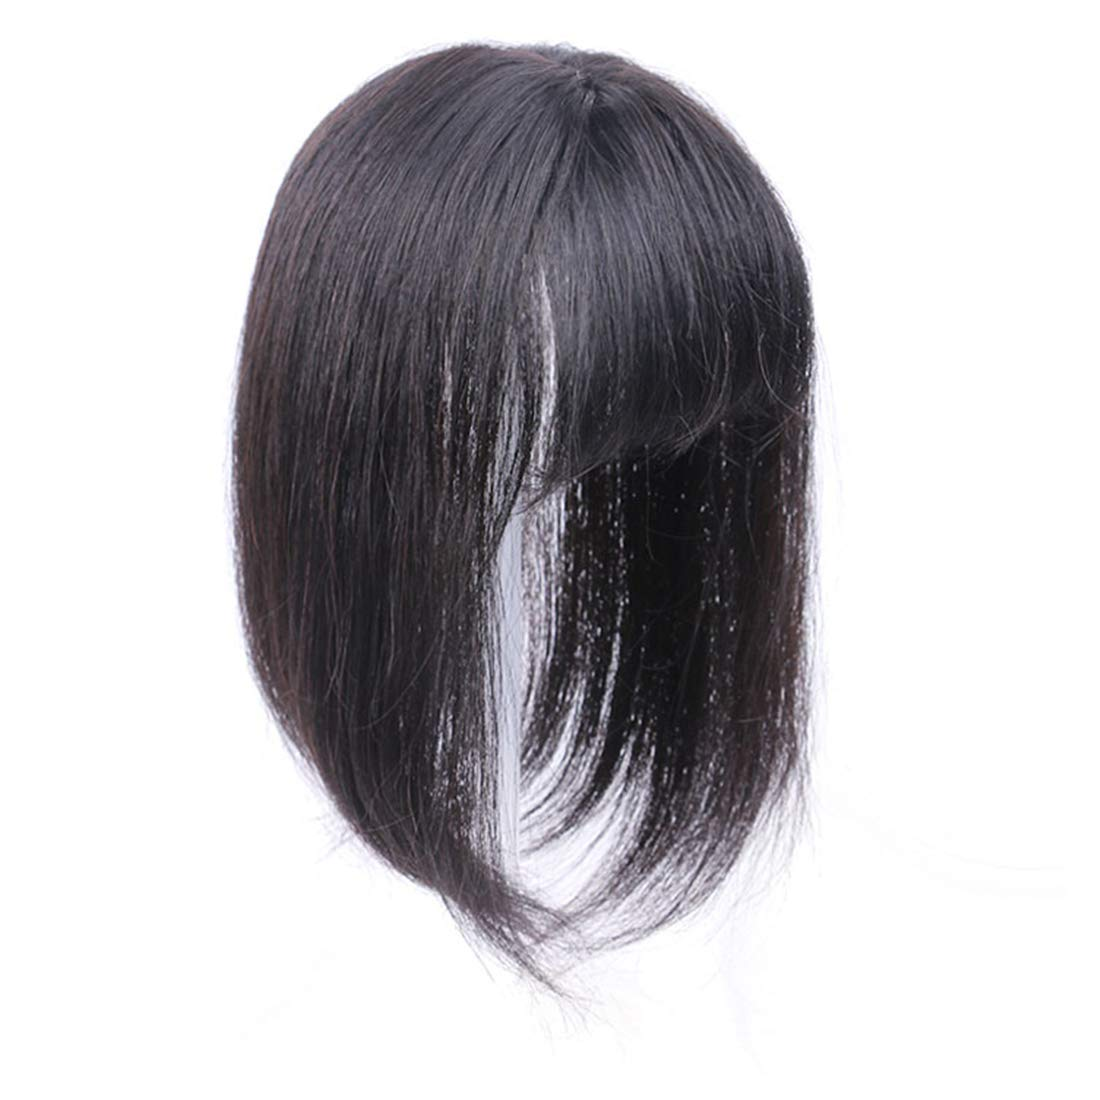 Straight Real Human Hair 3 Inch x 4 Inch Crown Topper Hairpiece with Bangs for Women with Thinning Hair 4